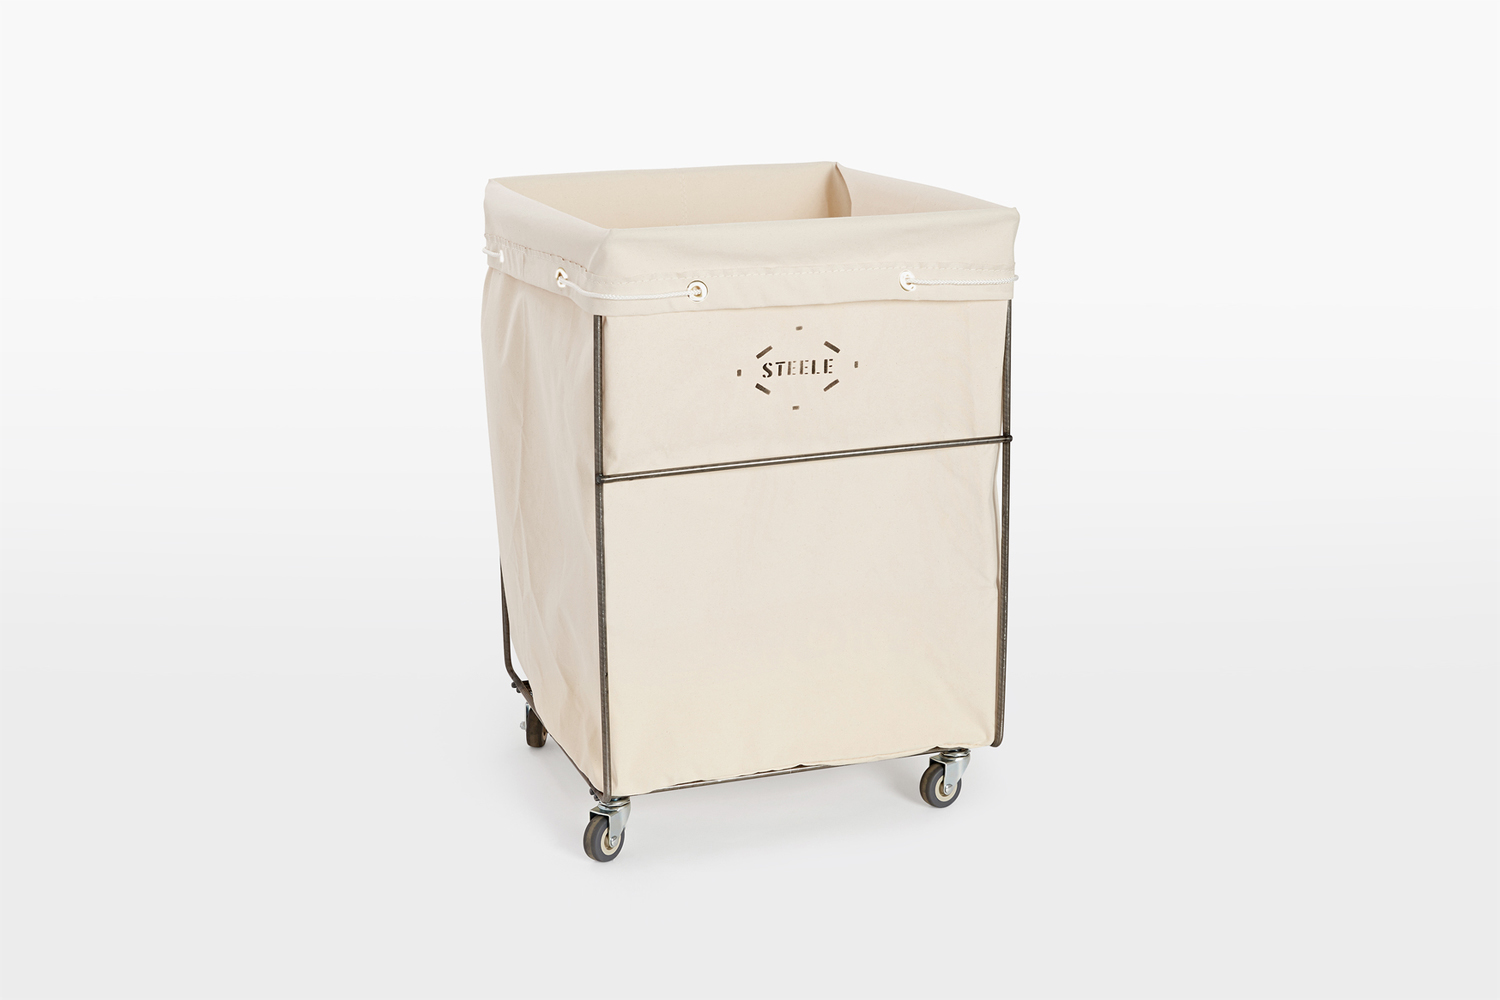 the steele canvas hamper with removable liner is \$\149 at rejuvenation. 9